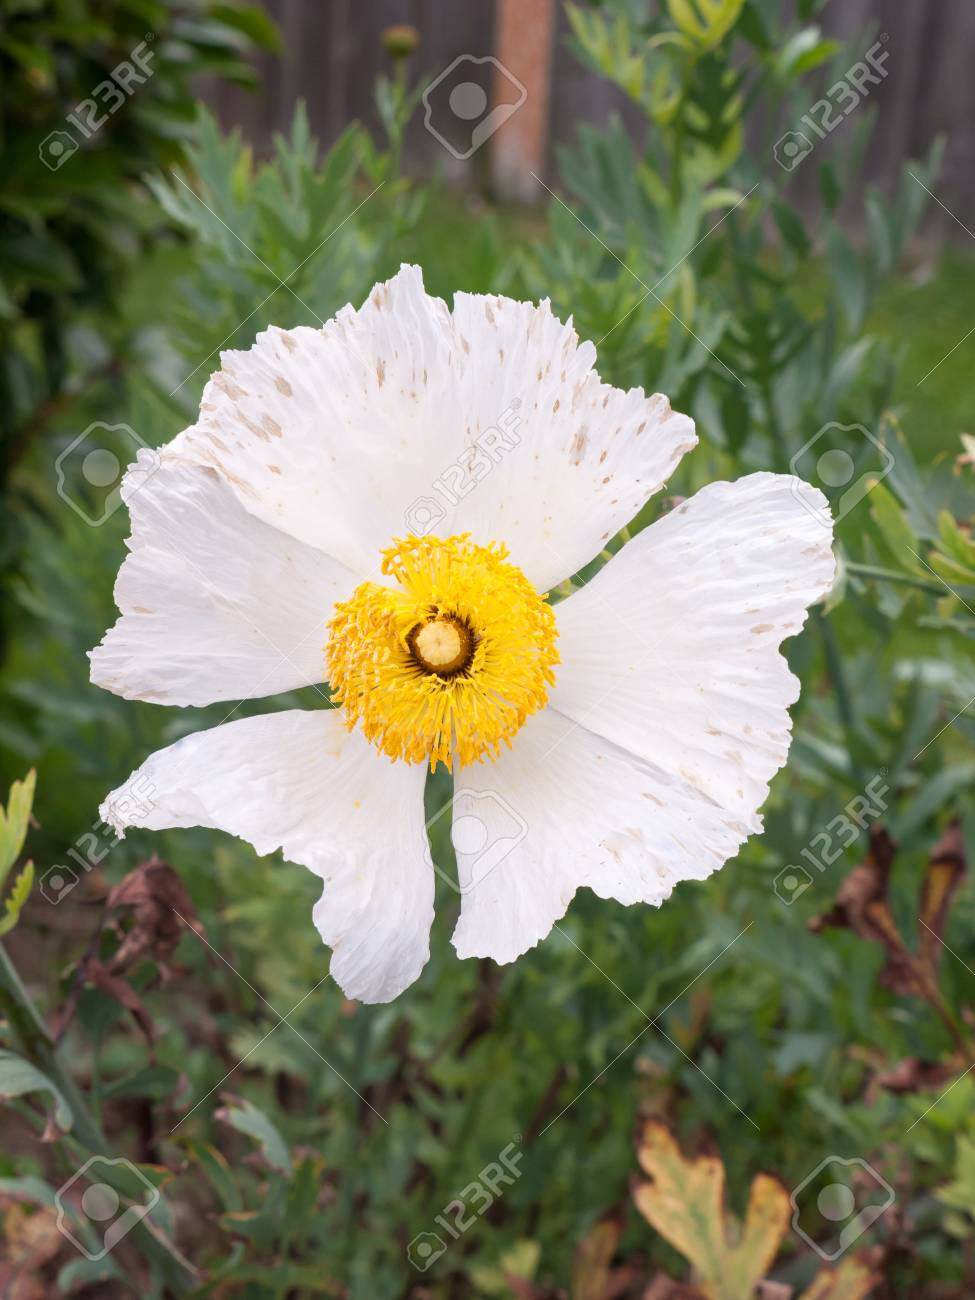 Beautiful White Flower Head Big Petals And Yellow Centre Essex